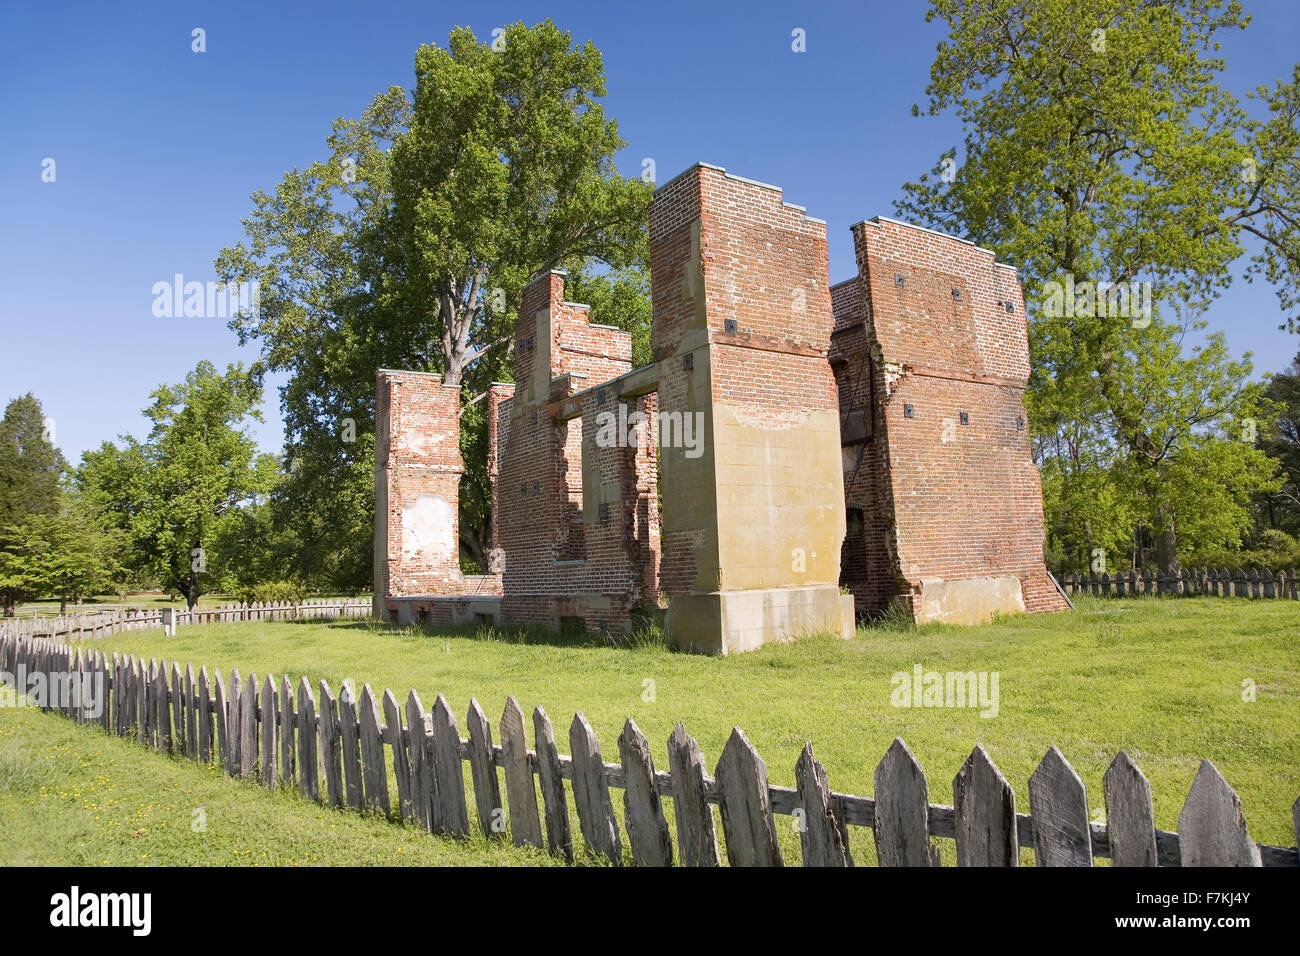 Early house foundations from the New Towne site of Jamestown, Jamestown Island, America's Birthplace, Virginia, Stock Photo